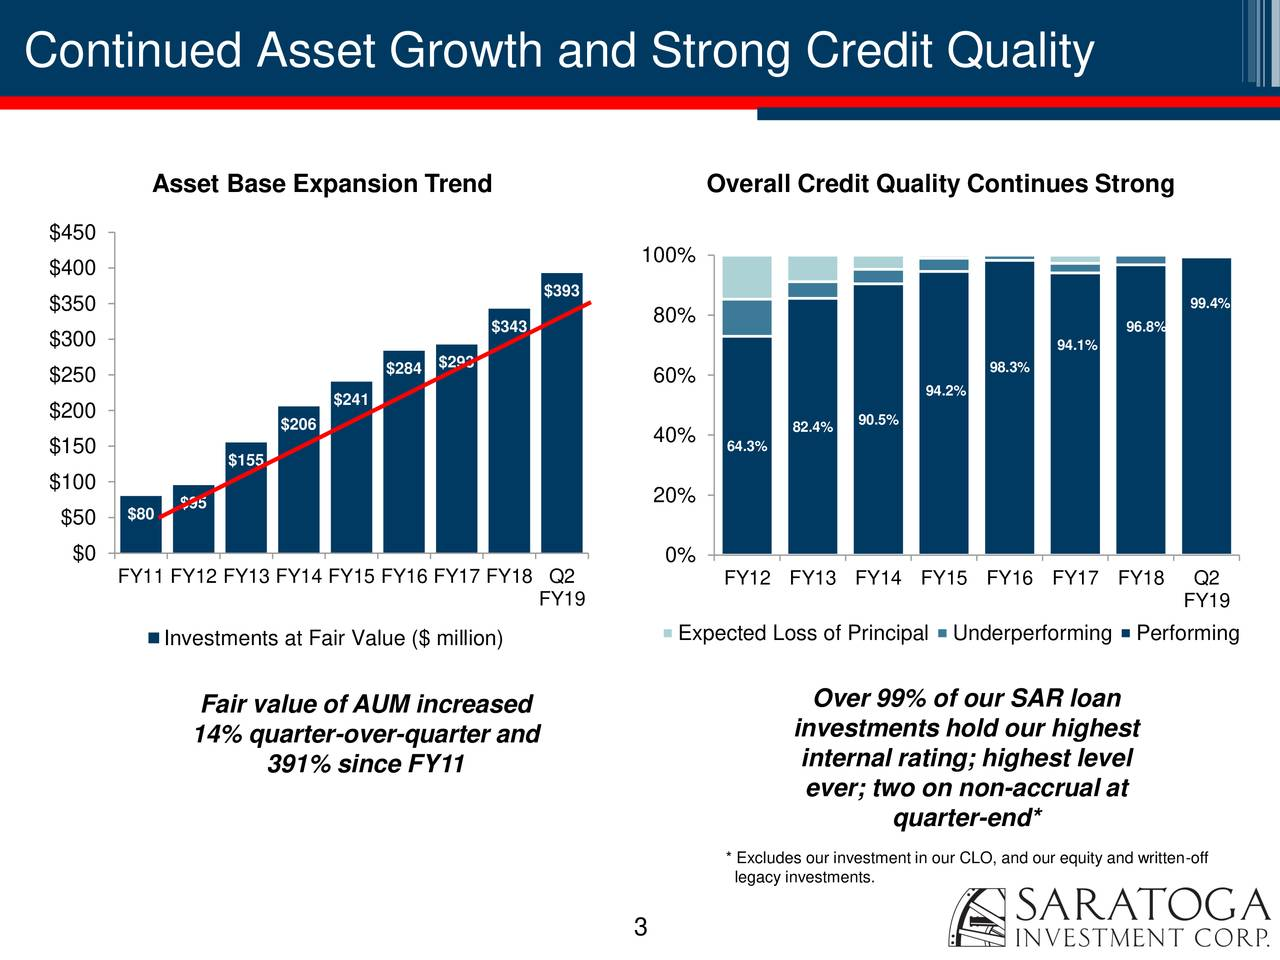 Asset Base Expansion Trend Overall Credit Quality Continues Strong $450 $400 100% $393 $350 99.4% $343 80% 96.8% $300 94.1% $284 $293 98.3% $250 60% 94.2% $200 $241 $206 82.4% 90.5% $150 40% 64.3% $155 $100 $80 $95 20% $50 $0 0% FY11 FY12 FY13 FY14 FY15 FY16 FY17 FY18 Q2 FY12 FY13 FY14 FY15 FY16 FY17 FY18 Q2 FY19 FY19 Expected Loss of PrincipalUnderperforming Performing Investments at Fair Value ($ million) Fair value of AUM increased Over 99% of our SAR loan 14% quarter-over-quarter and investments hold our highest 391% since FY11 internal rating; highest level ever; two on non-accrual at quarter-end* * Excludes our investment in our CLO, and our equity and written-off legacy investments. 3